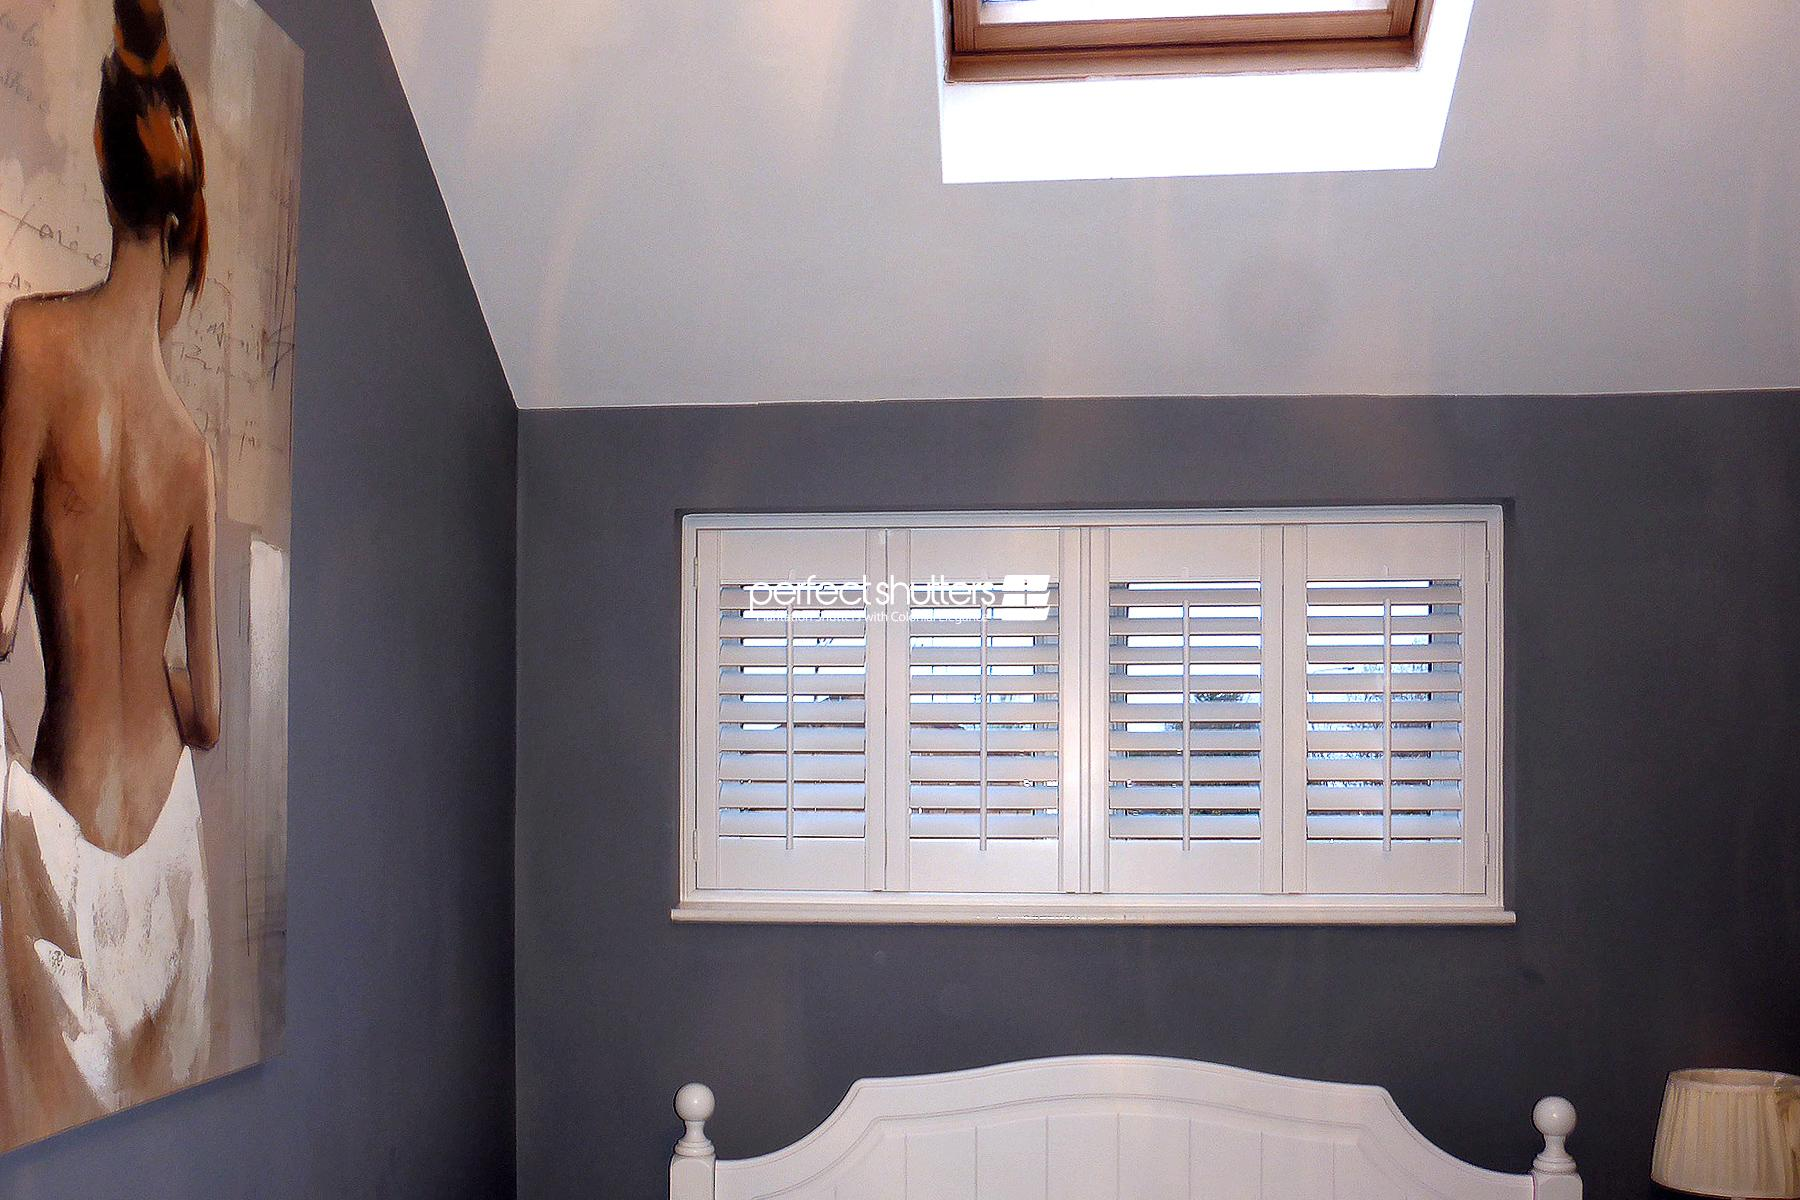 White shutters on small windows